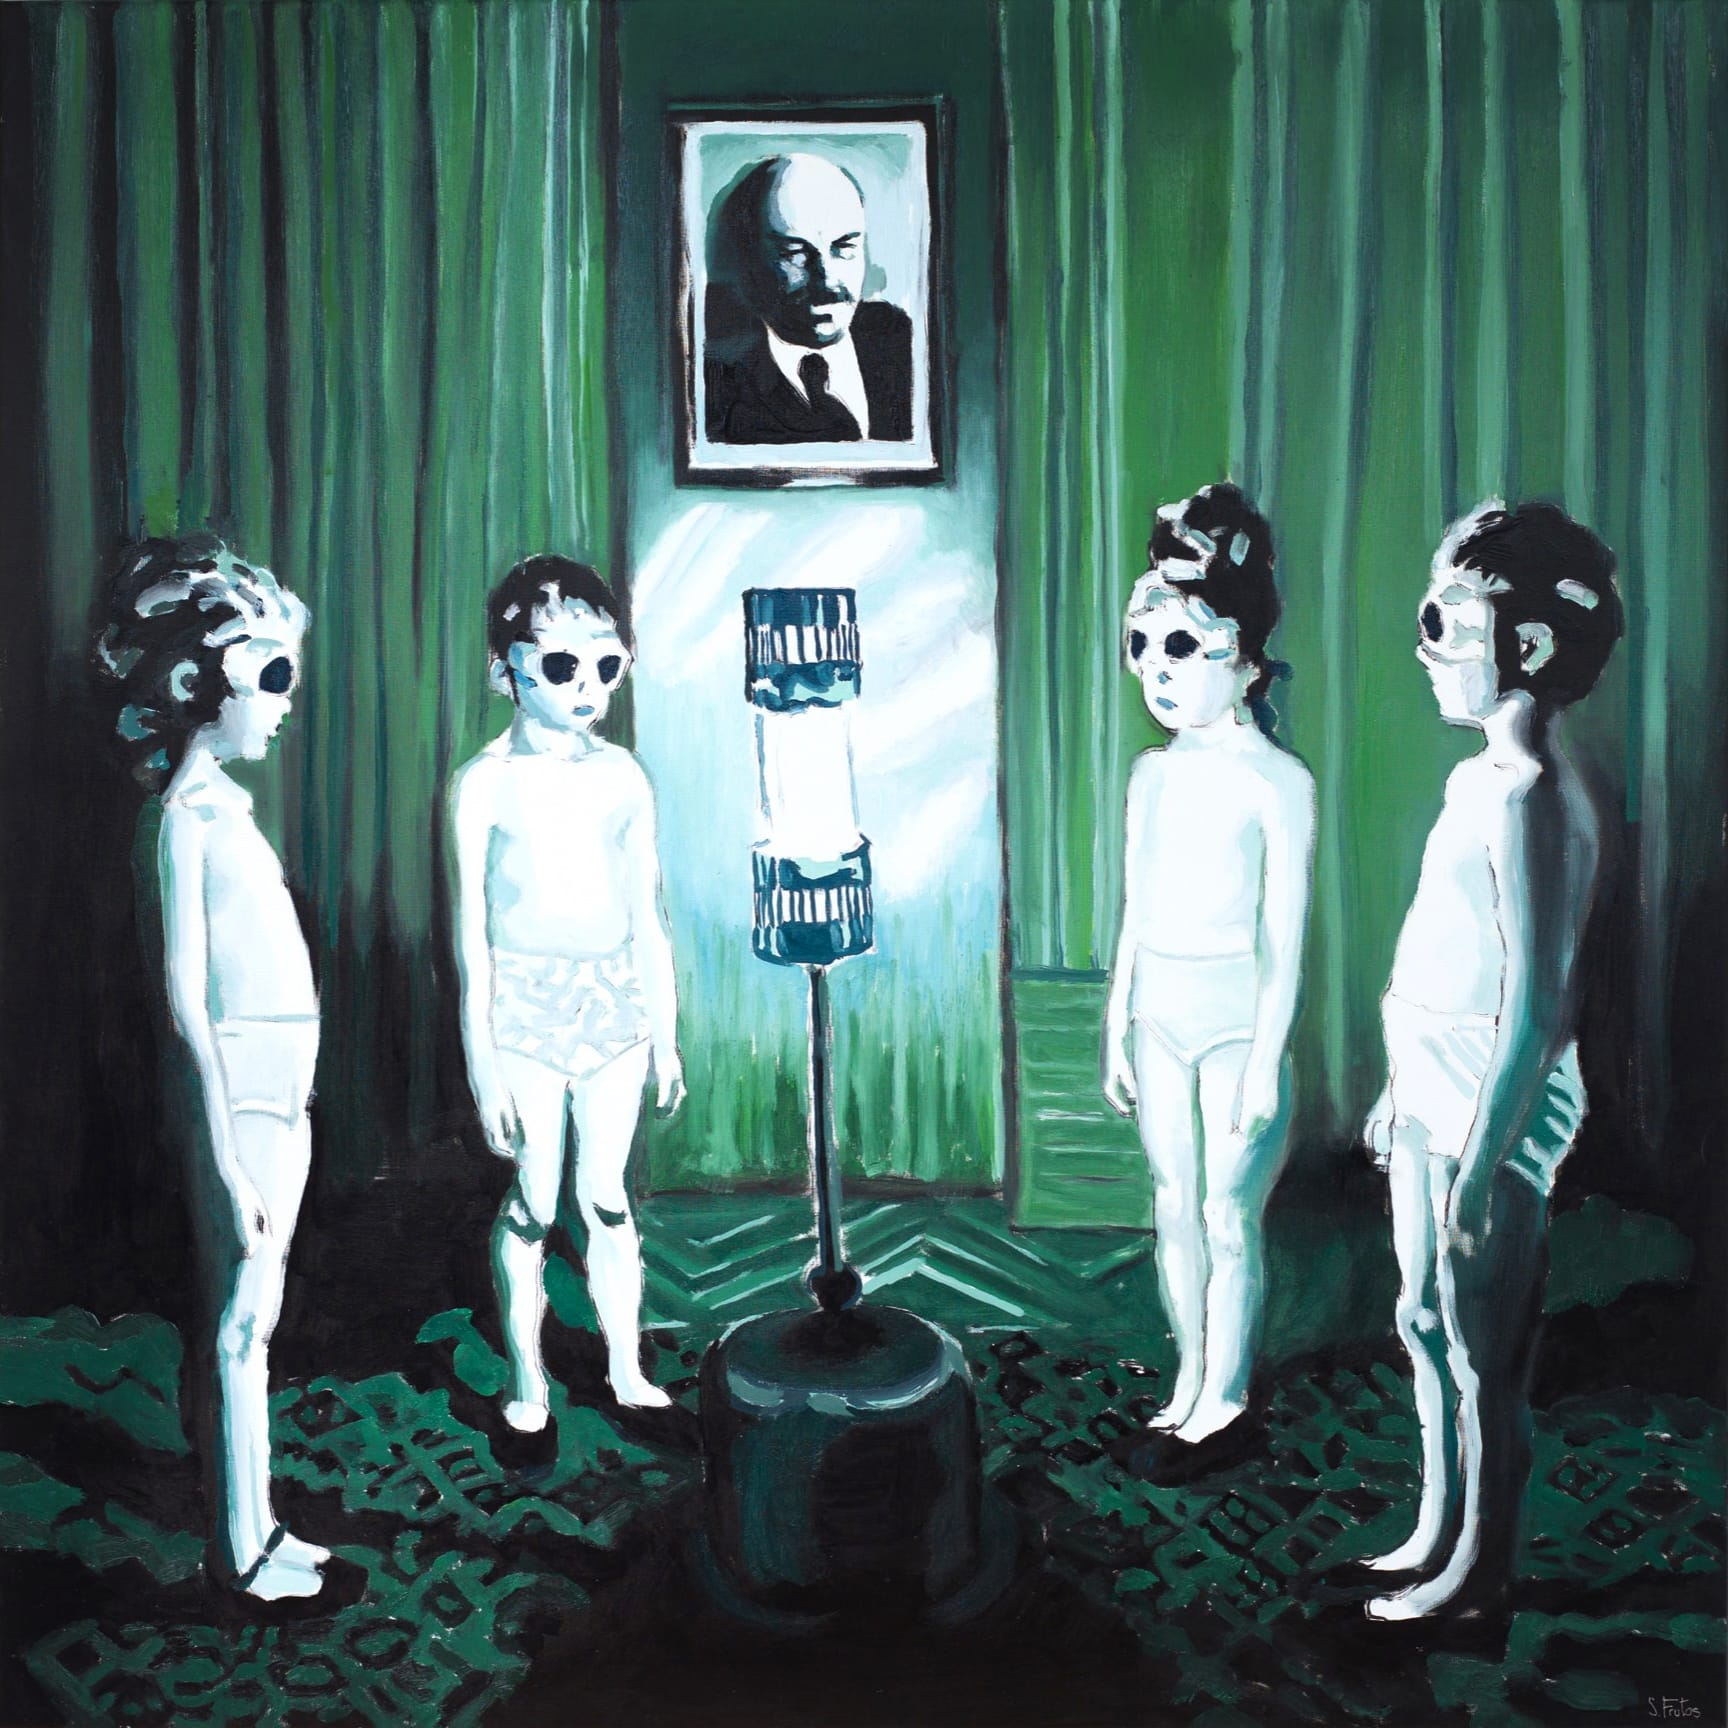 UVA Kids III. Oil on canvas, 120 x 120 cm, 2018